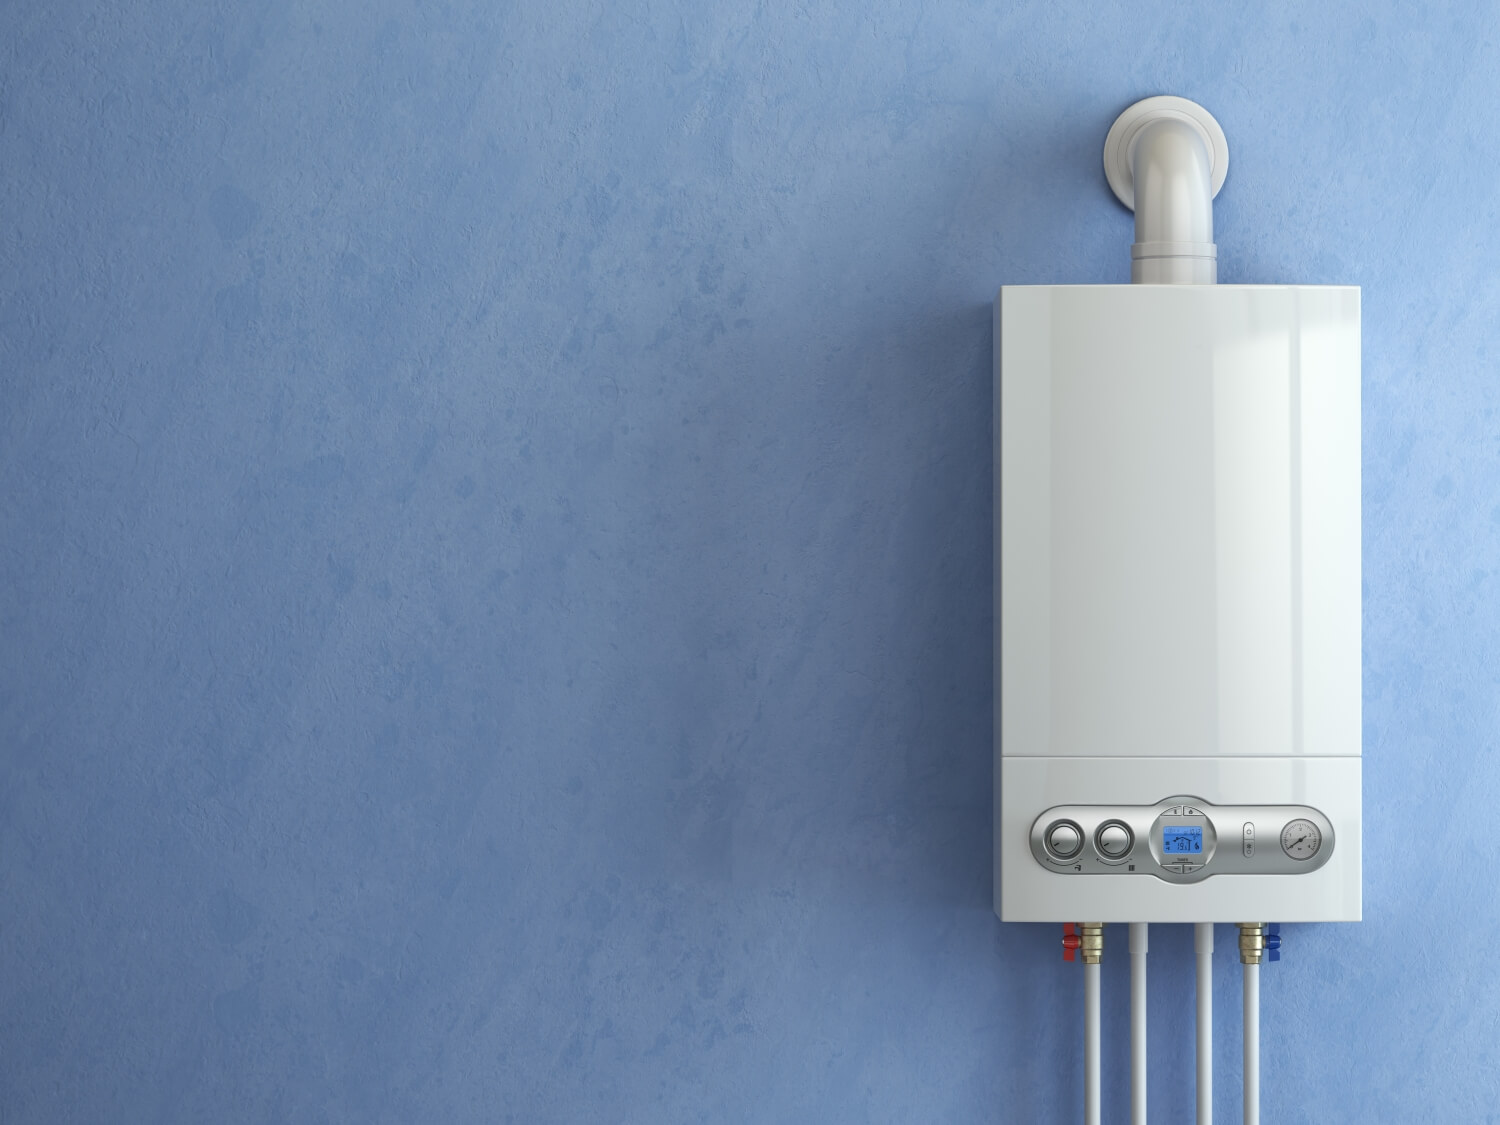 Want a New Boiler on Monthly Finance?